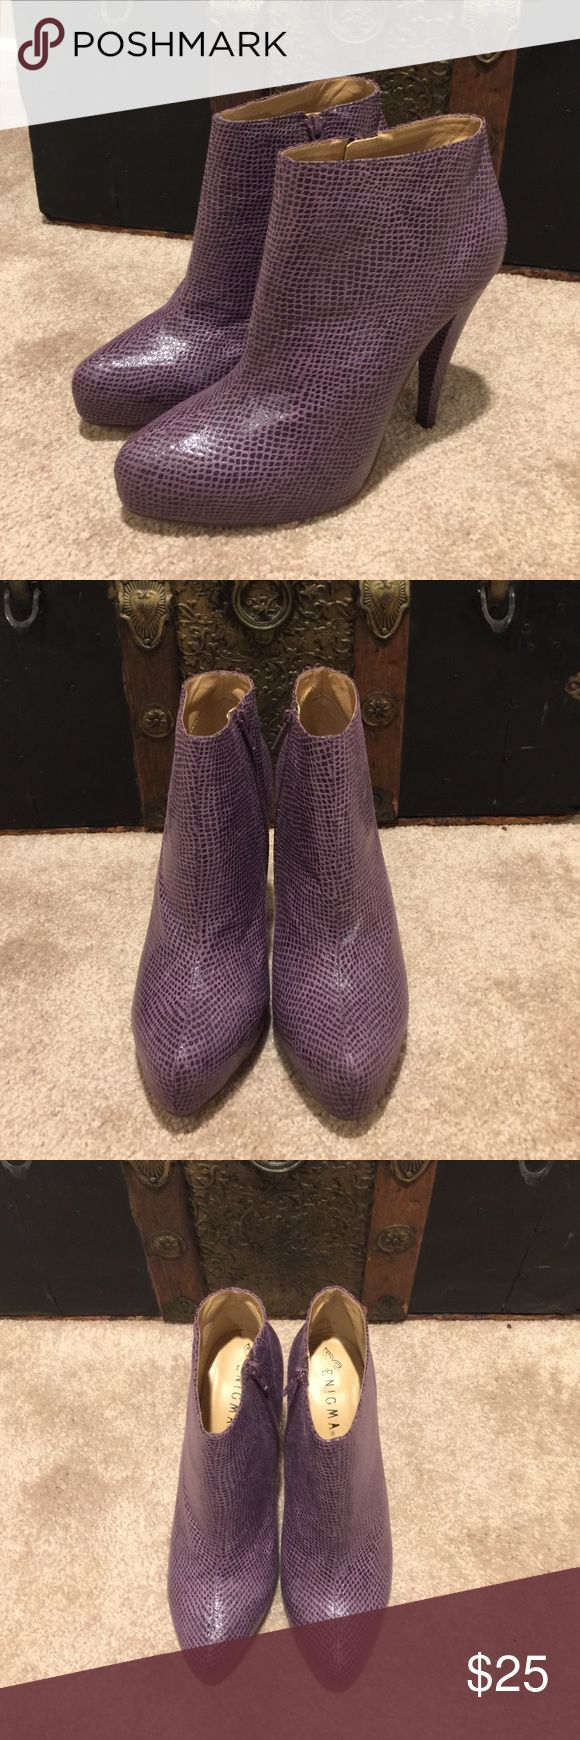 🎉Reduced for today only🎉Enigma Ankle Boots Enigma Purple Ankle Boots are in excellent condition.  Material is leather Size 10 Enigma Shoes Ankle Boots & Booties